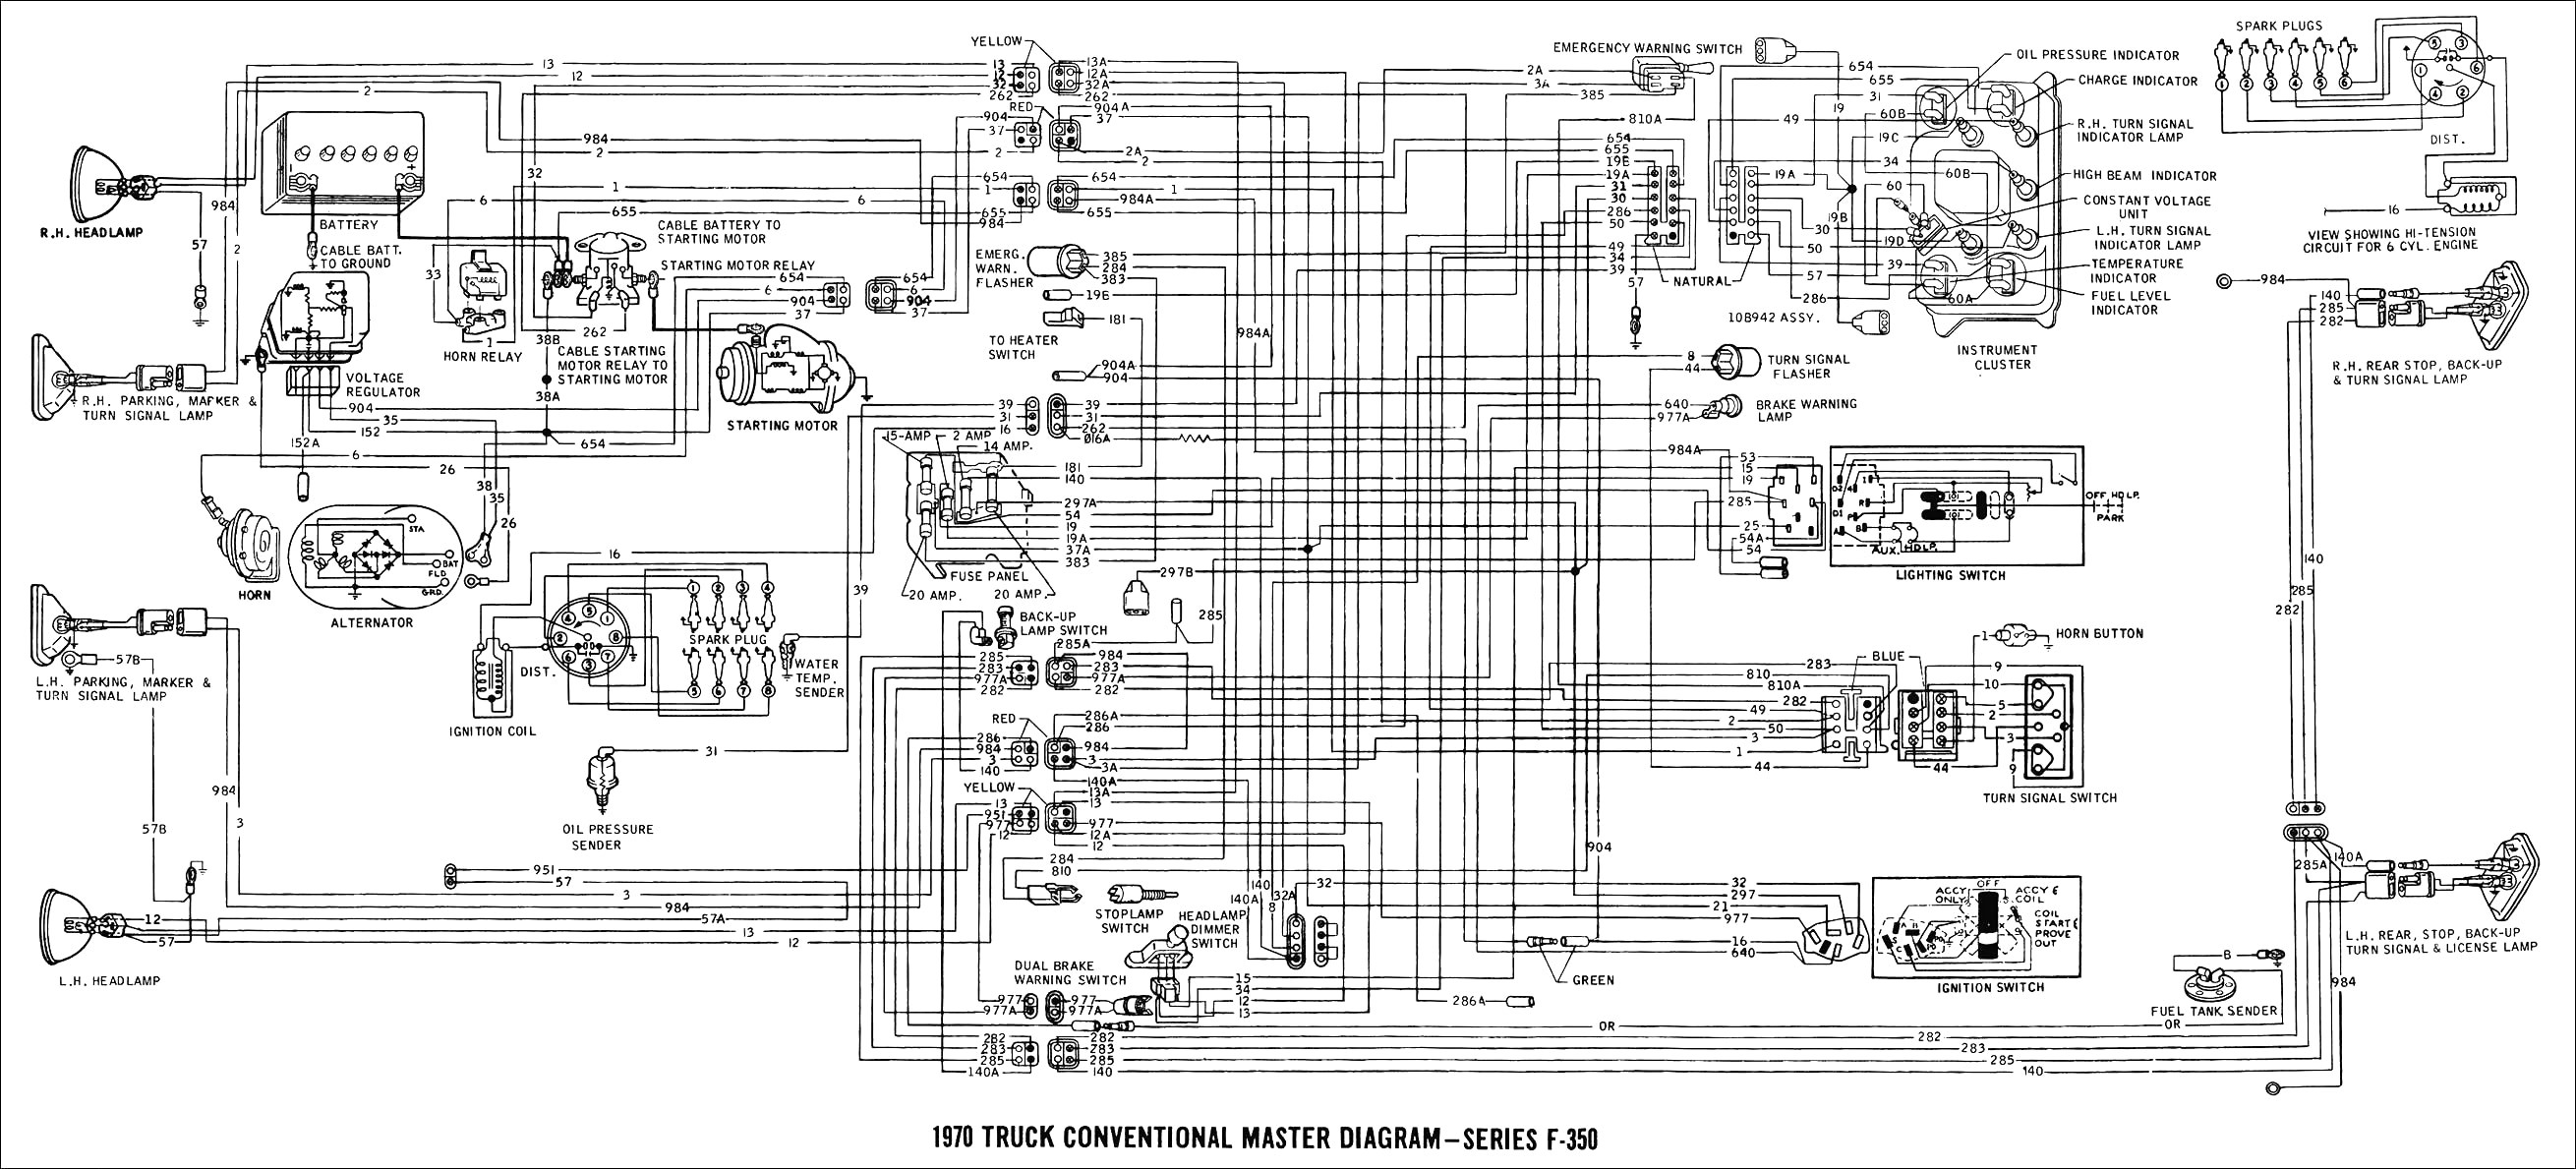 Suzuki Carry Wiring Diagram Electronicswiring 1996 Ford Ranger In 70f350 Master And 95